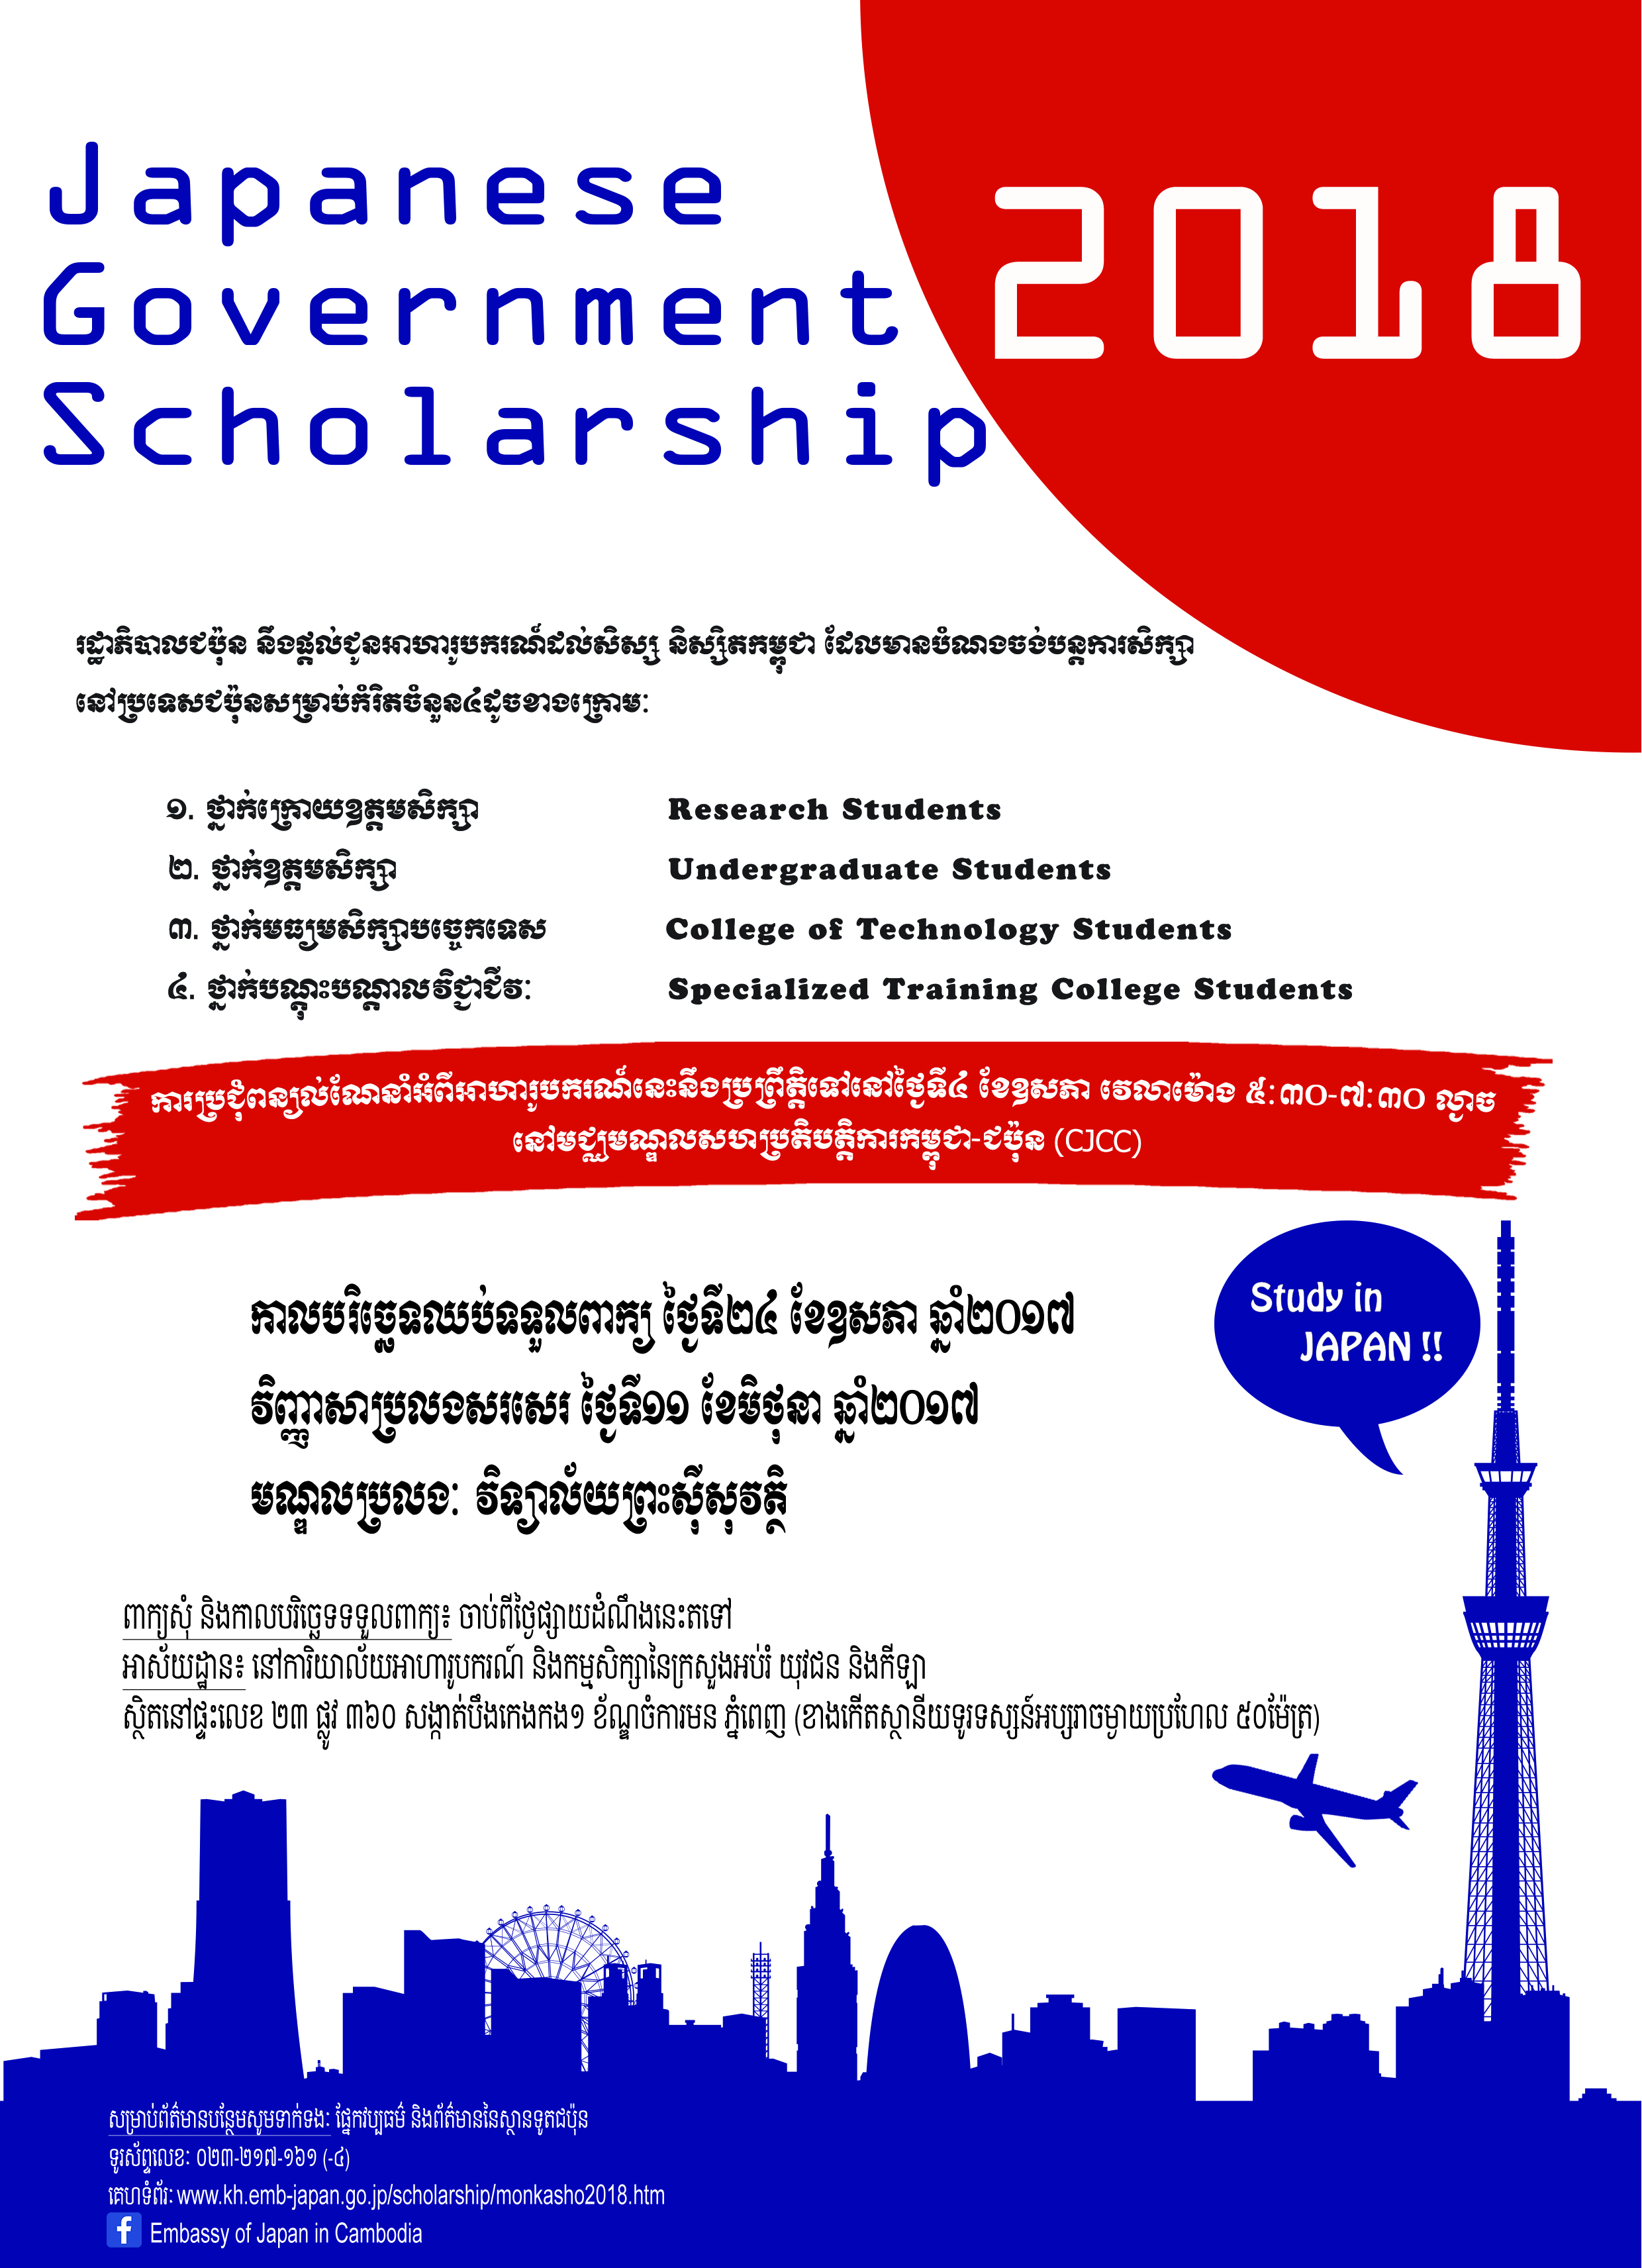 2018 MONBUKAGAKUSHO Scholarships on application in spanish, application trial, application to rent california, application meaning in science, application submitted, application for rental, application insights, application database diagram, application service provider, application approved, application template, application for employment, application to join motorcycle club, application error, application cartoon, application to date my son, application to join a club, application for scholarship sample, application to be my boyfriend, application clip art,